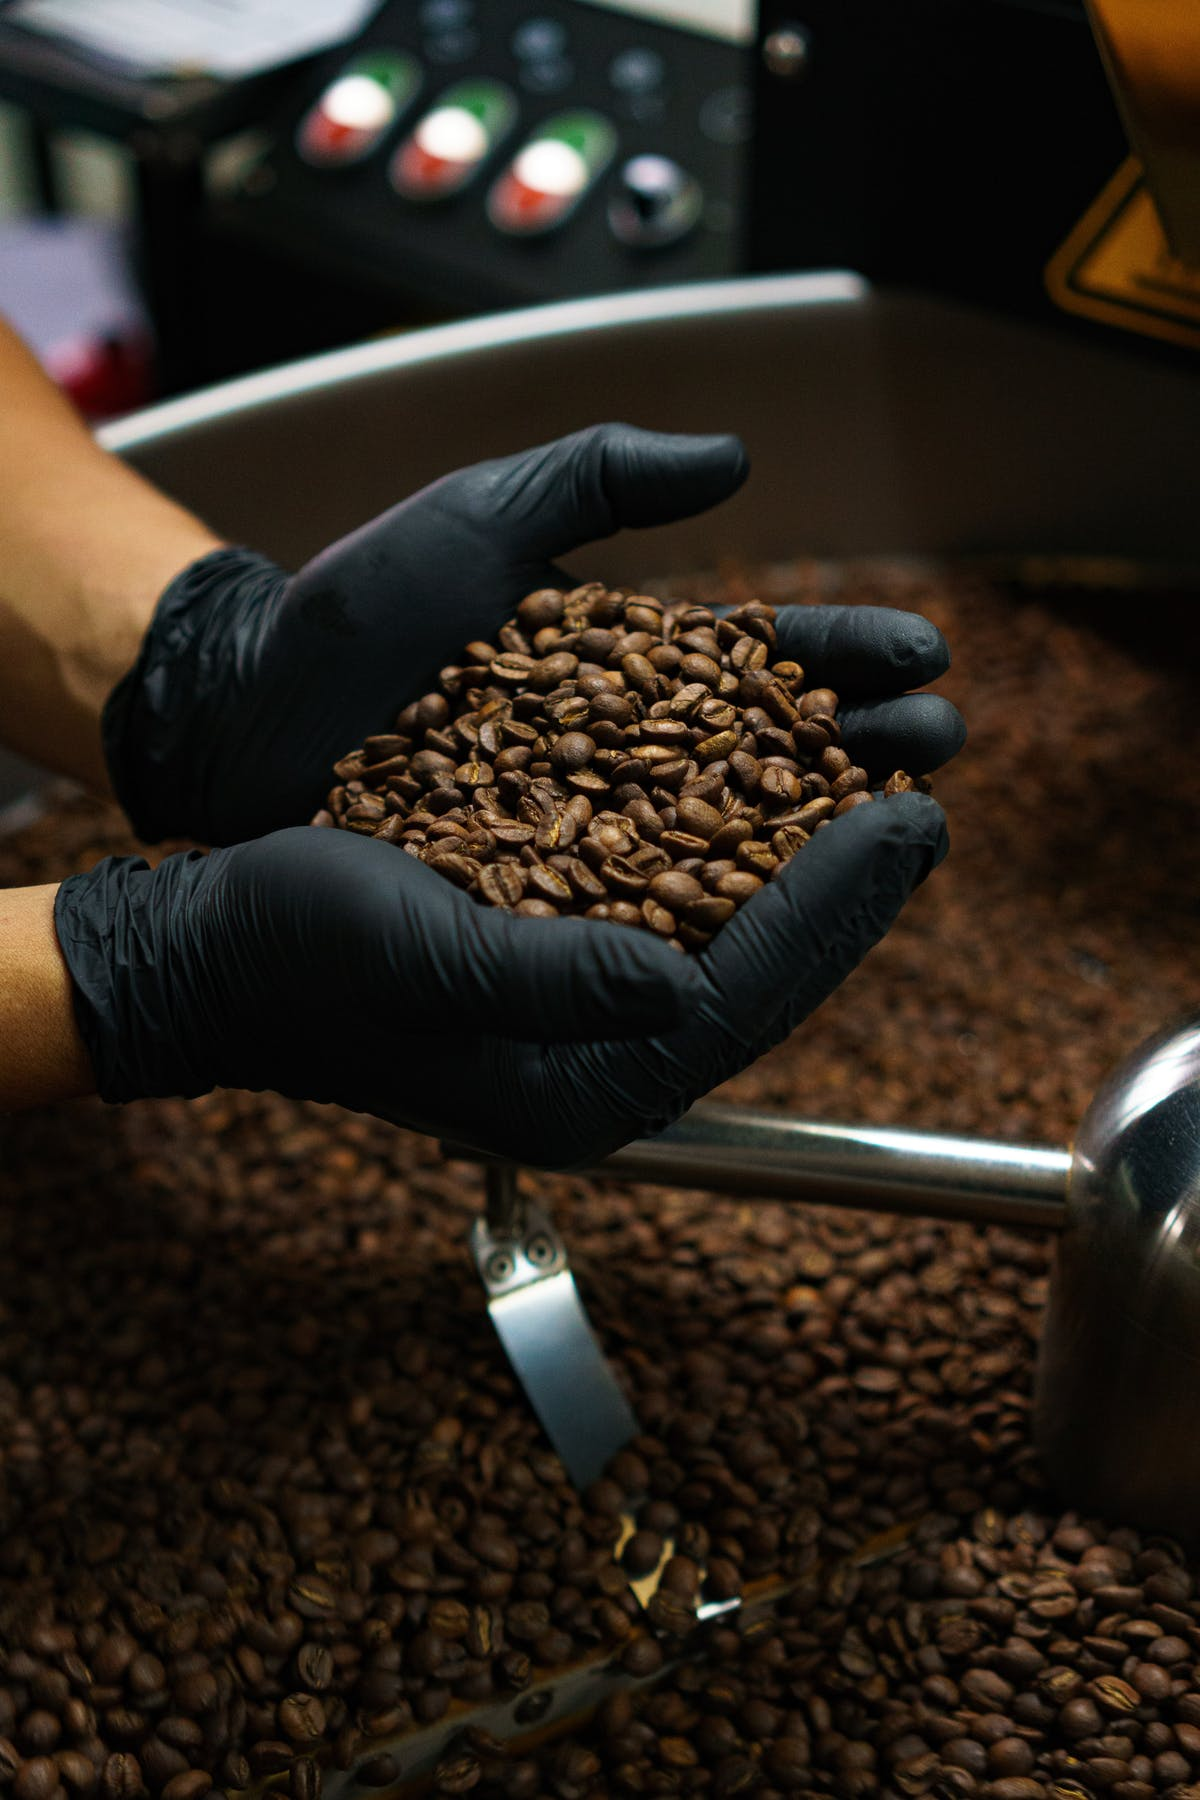 A person wearing black gloves holds coffee in his hands.